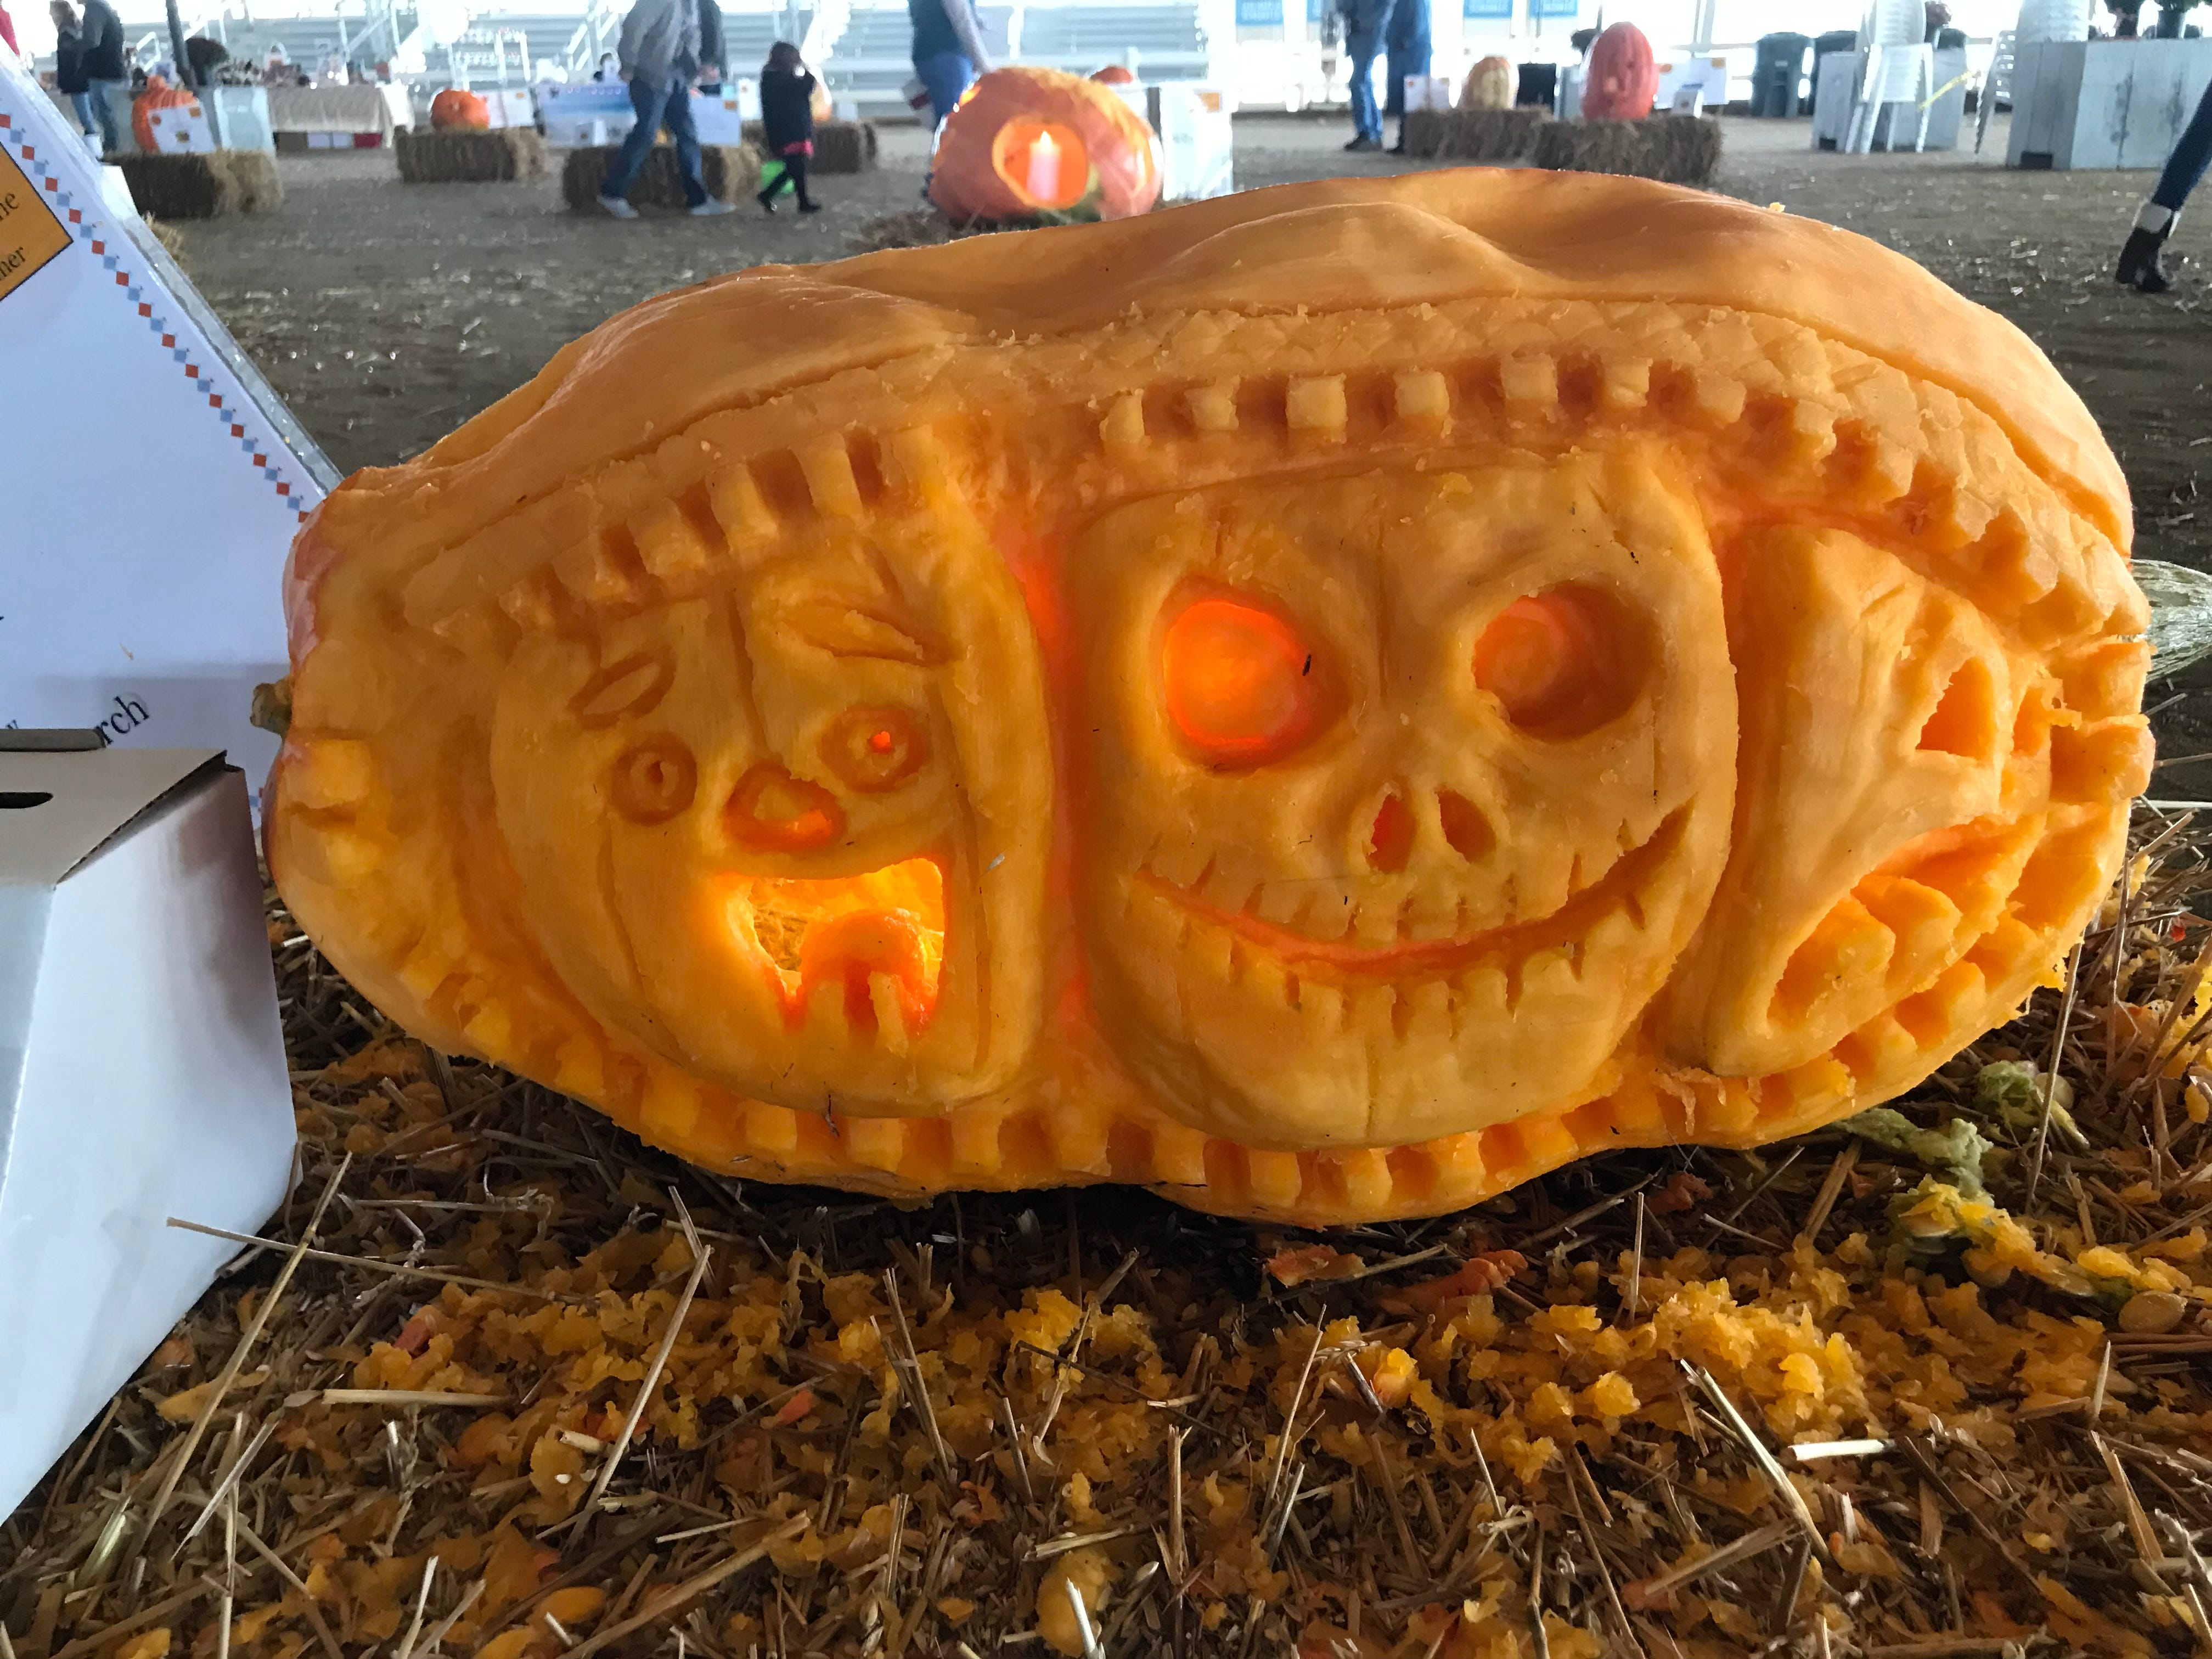 Grace Fellowship Church turned their pumpkin on its side to create this carving for the first Great Delaware Pumpkin Carve.